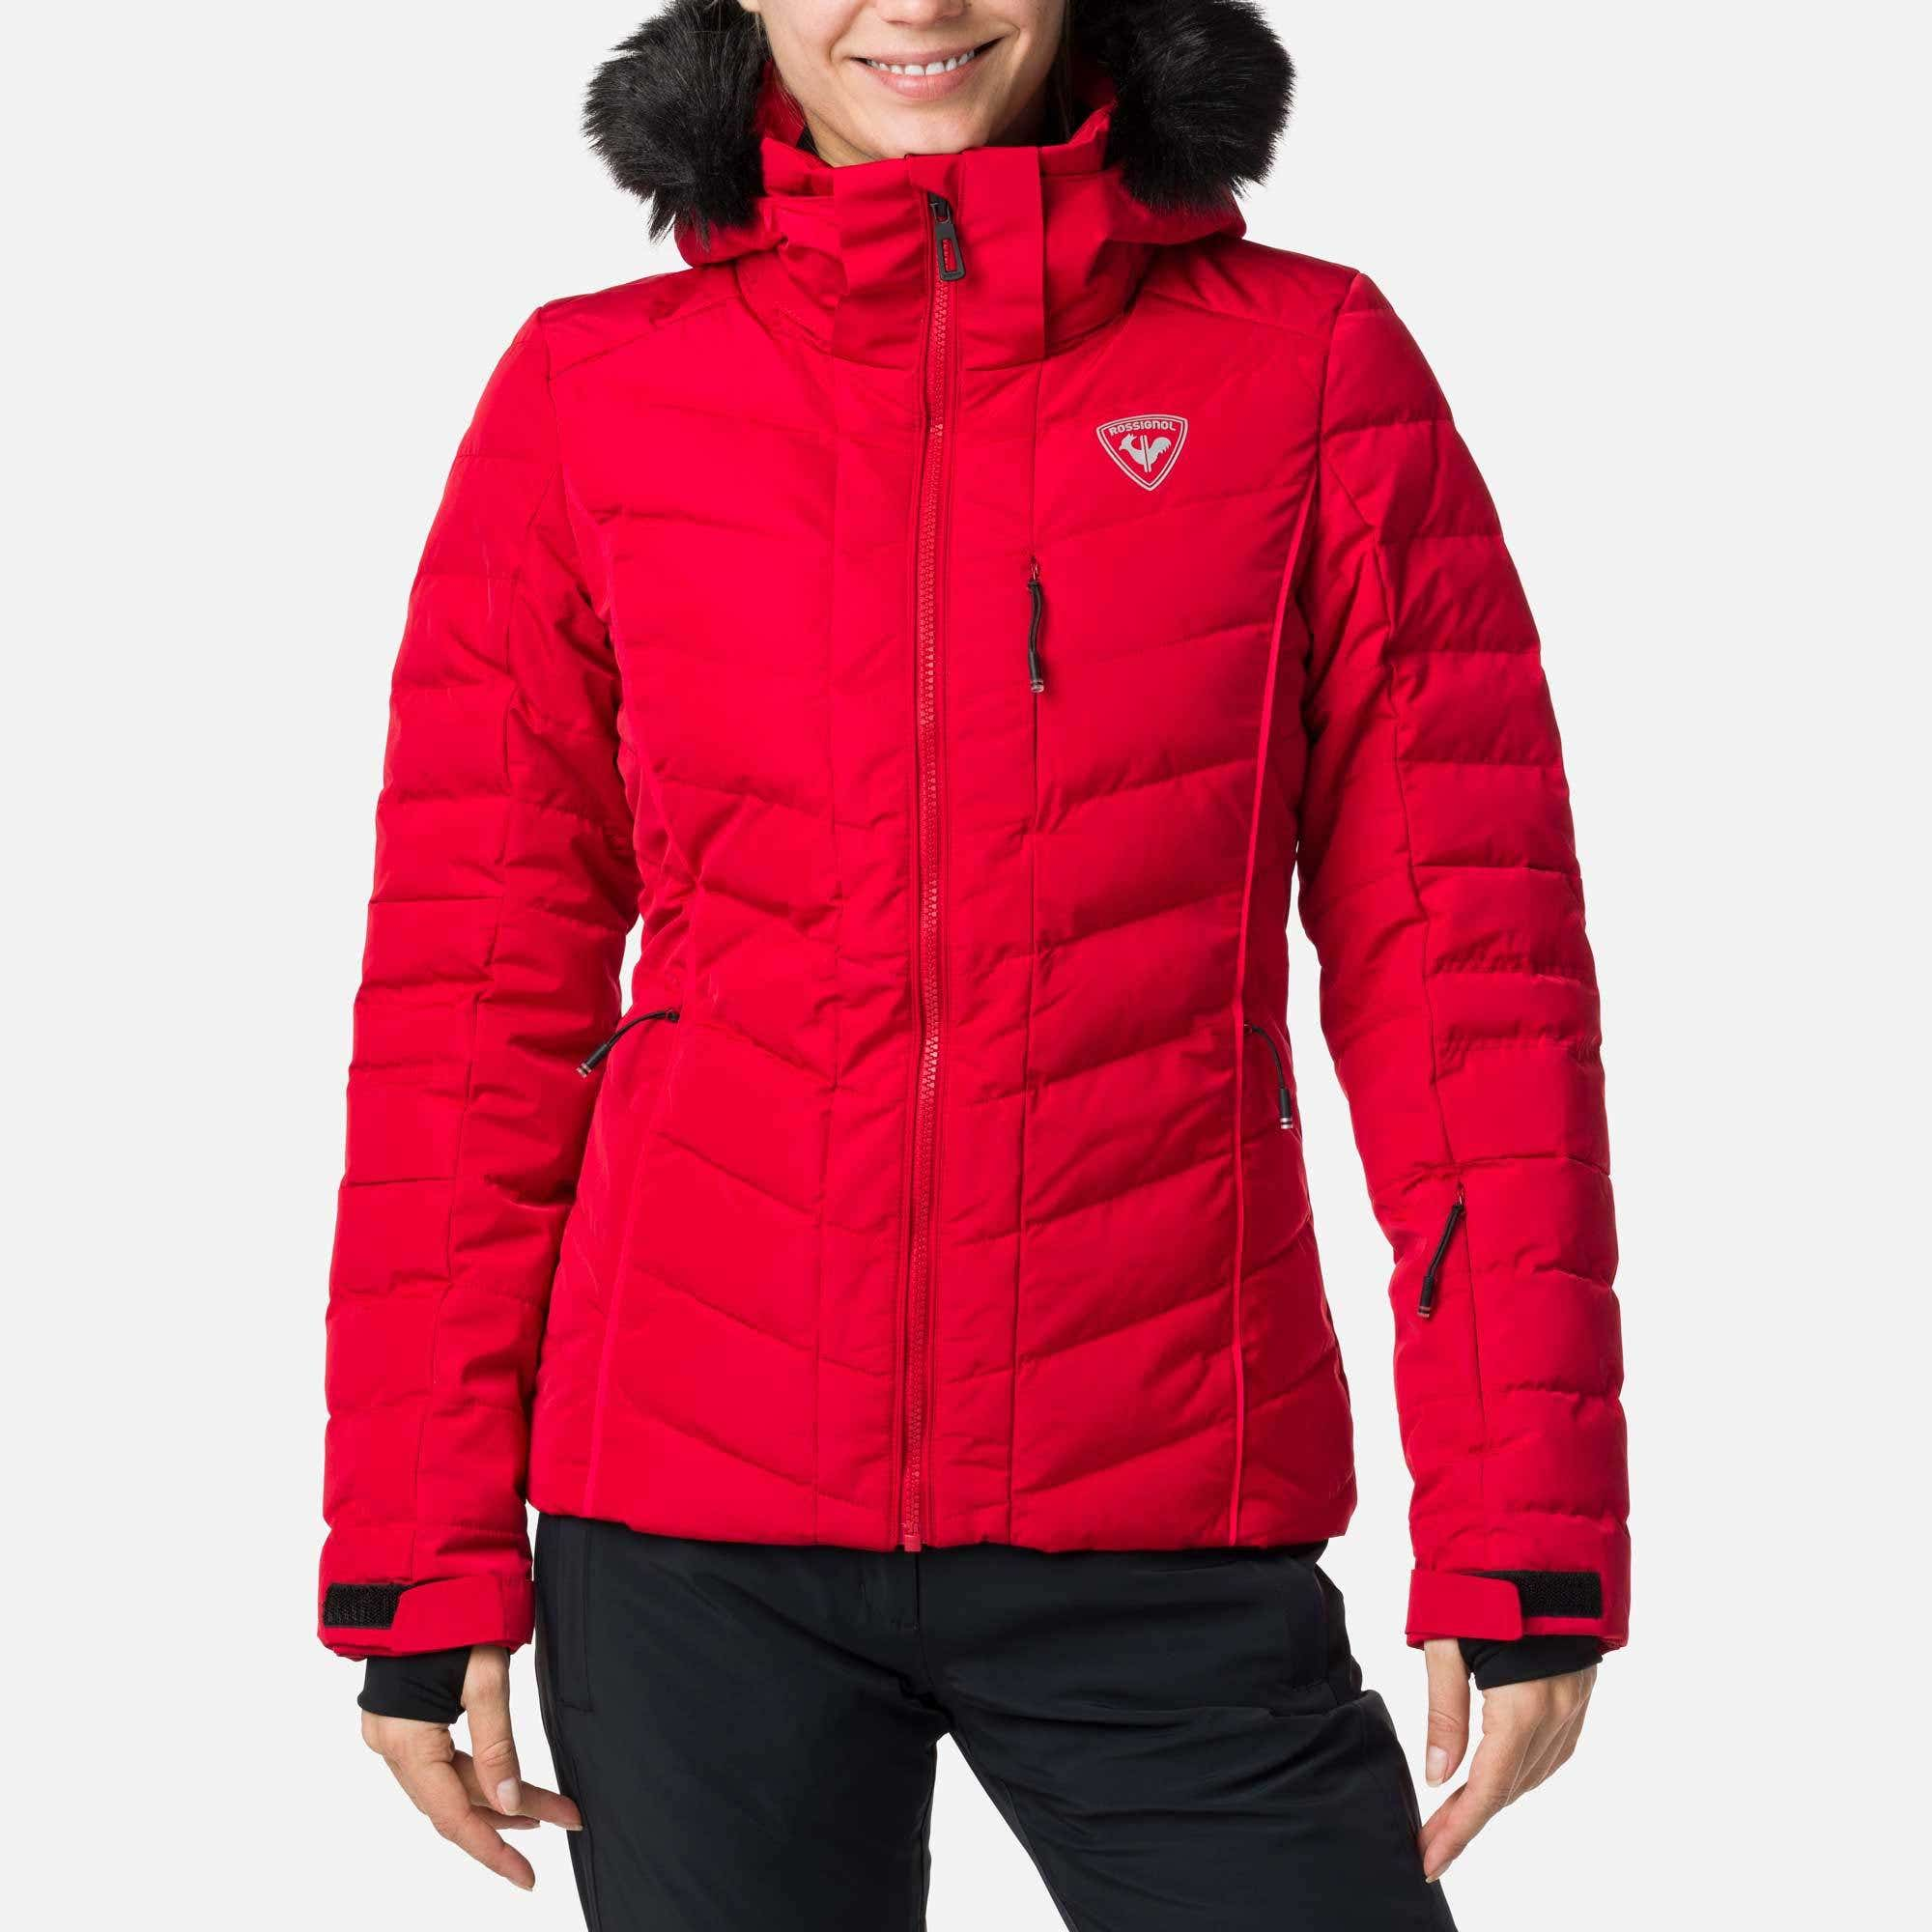 Image of Women's Pearly Rapide ski jacket